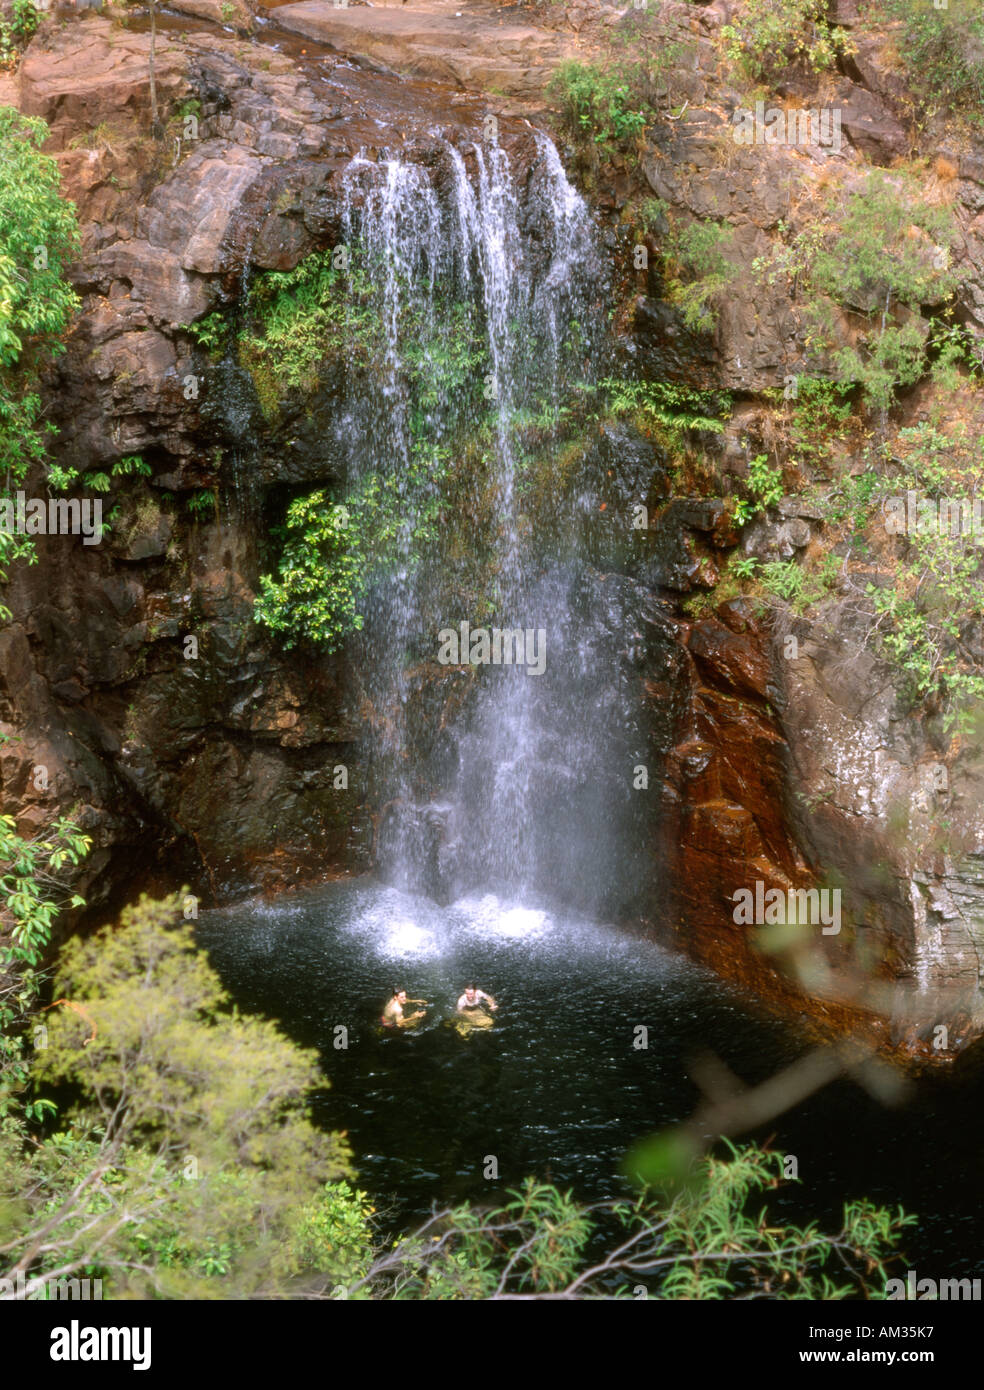 Australia. Northern territory. Litchfield national park. Florence falls - Stock Image